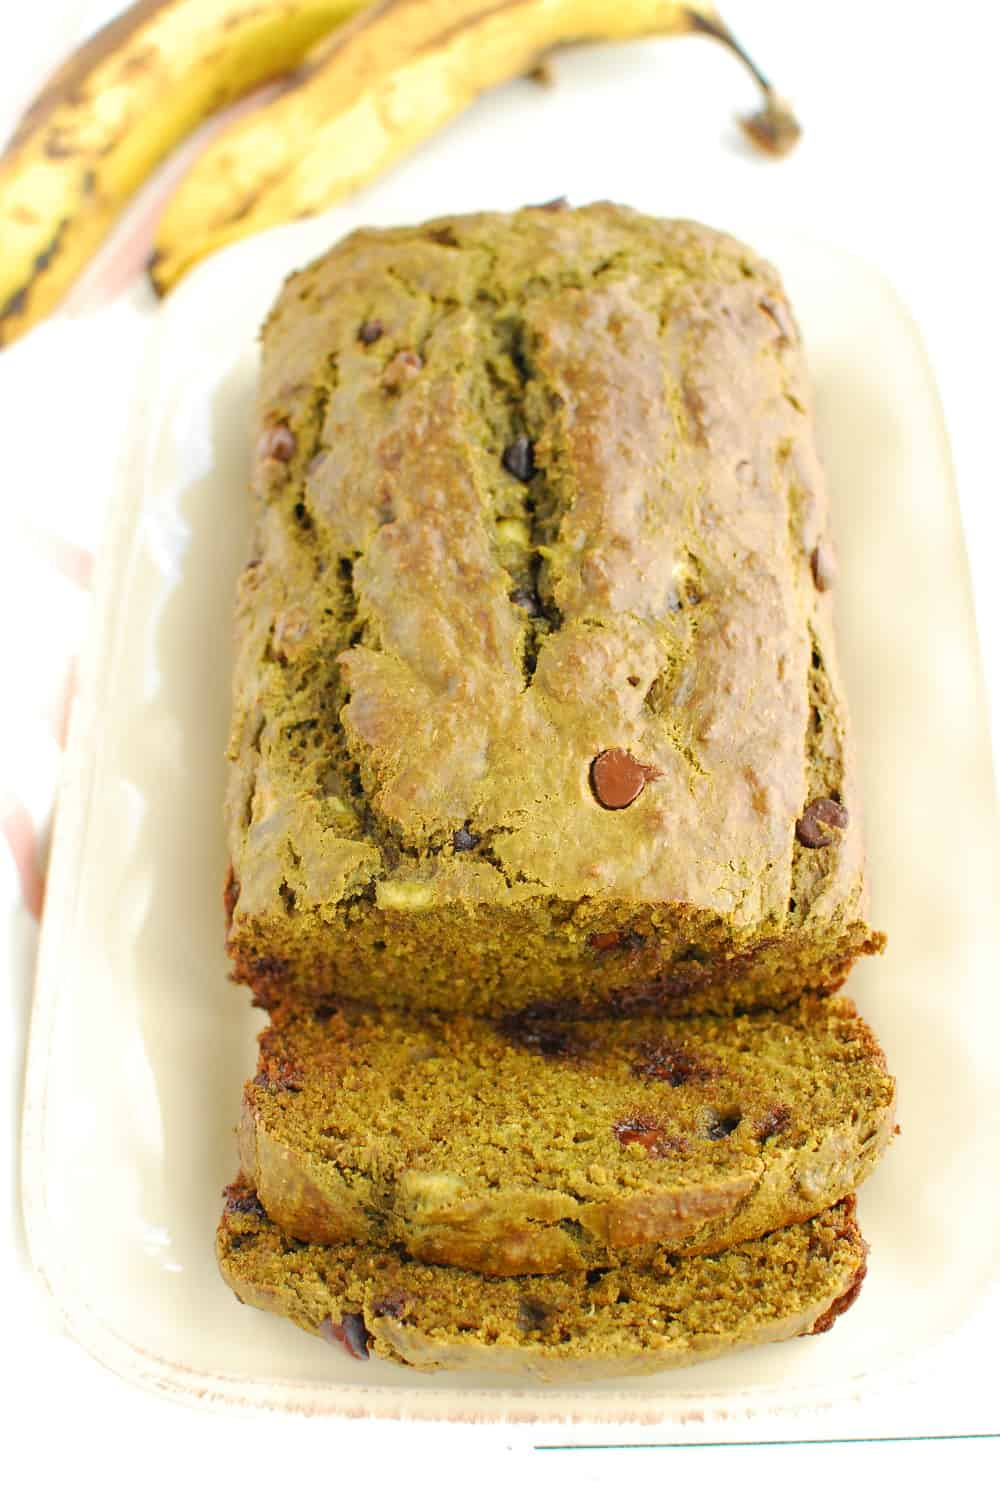 A loaf of matcha banana bread that has been sliced into, next to two overripe bananas.